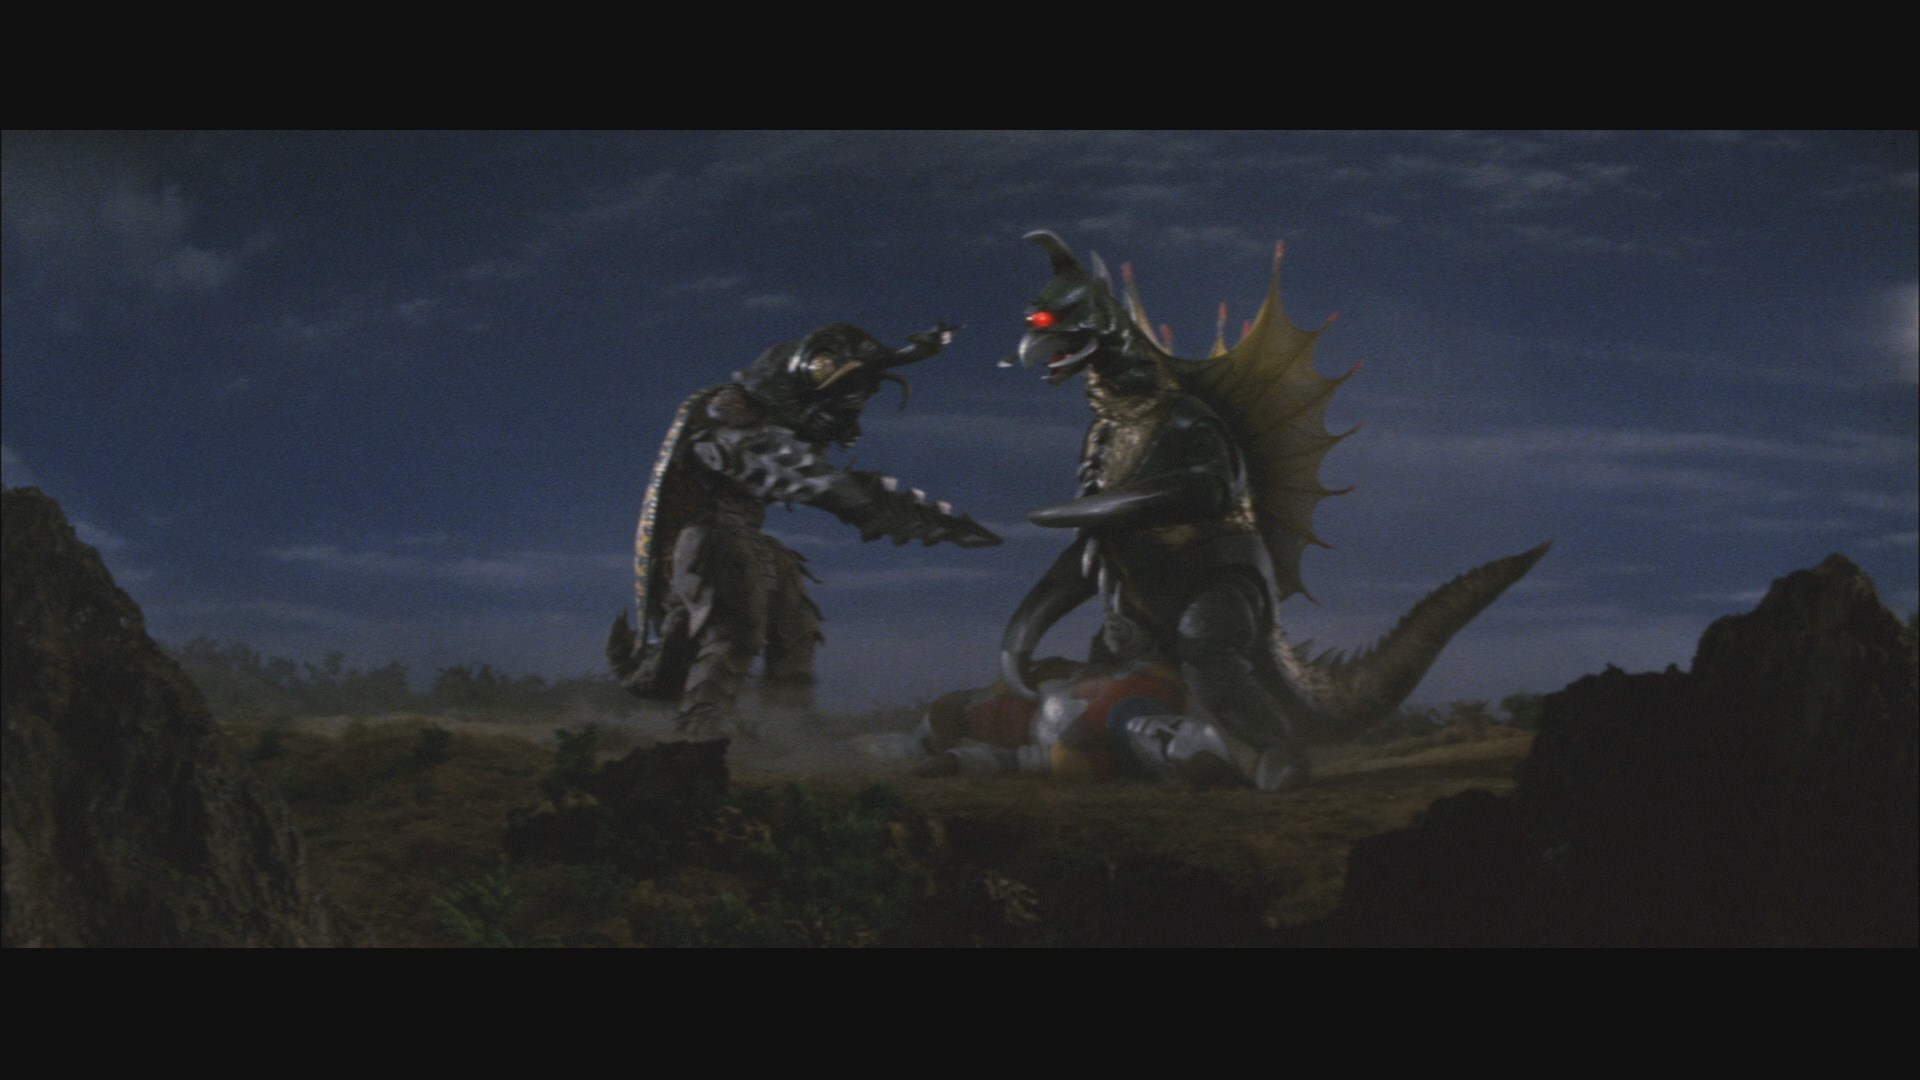 Godzilla vs. Gigan (1972) + Godzilla vs. Megalon (1973) [Criterion Collection]